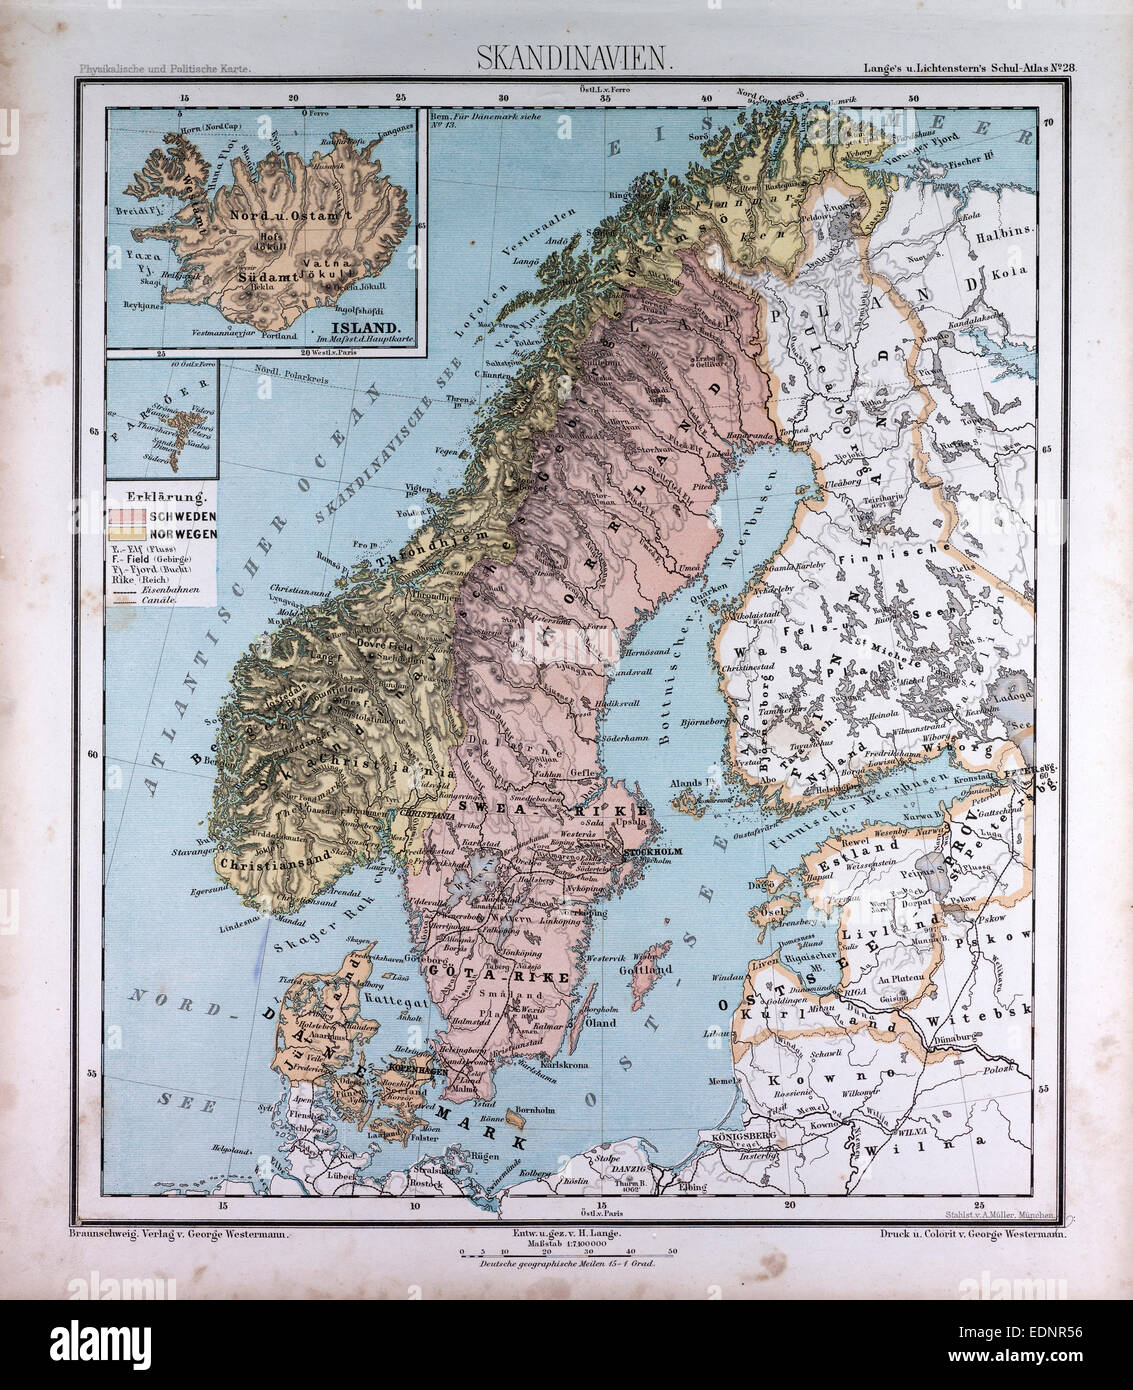 Scandinavia  Northern Europe  atlas by Th  von Liechtenstern and     Scandinavia  Northern Europe  atlas by Th  von Liechtenstern and Henry  Lange  antique map 1869